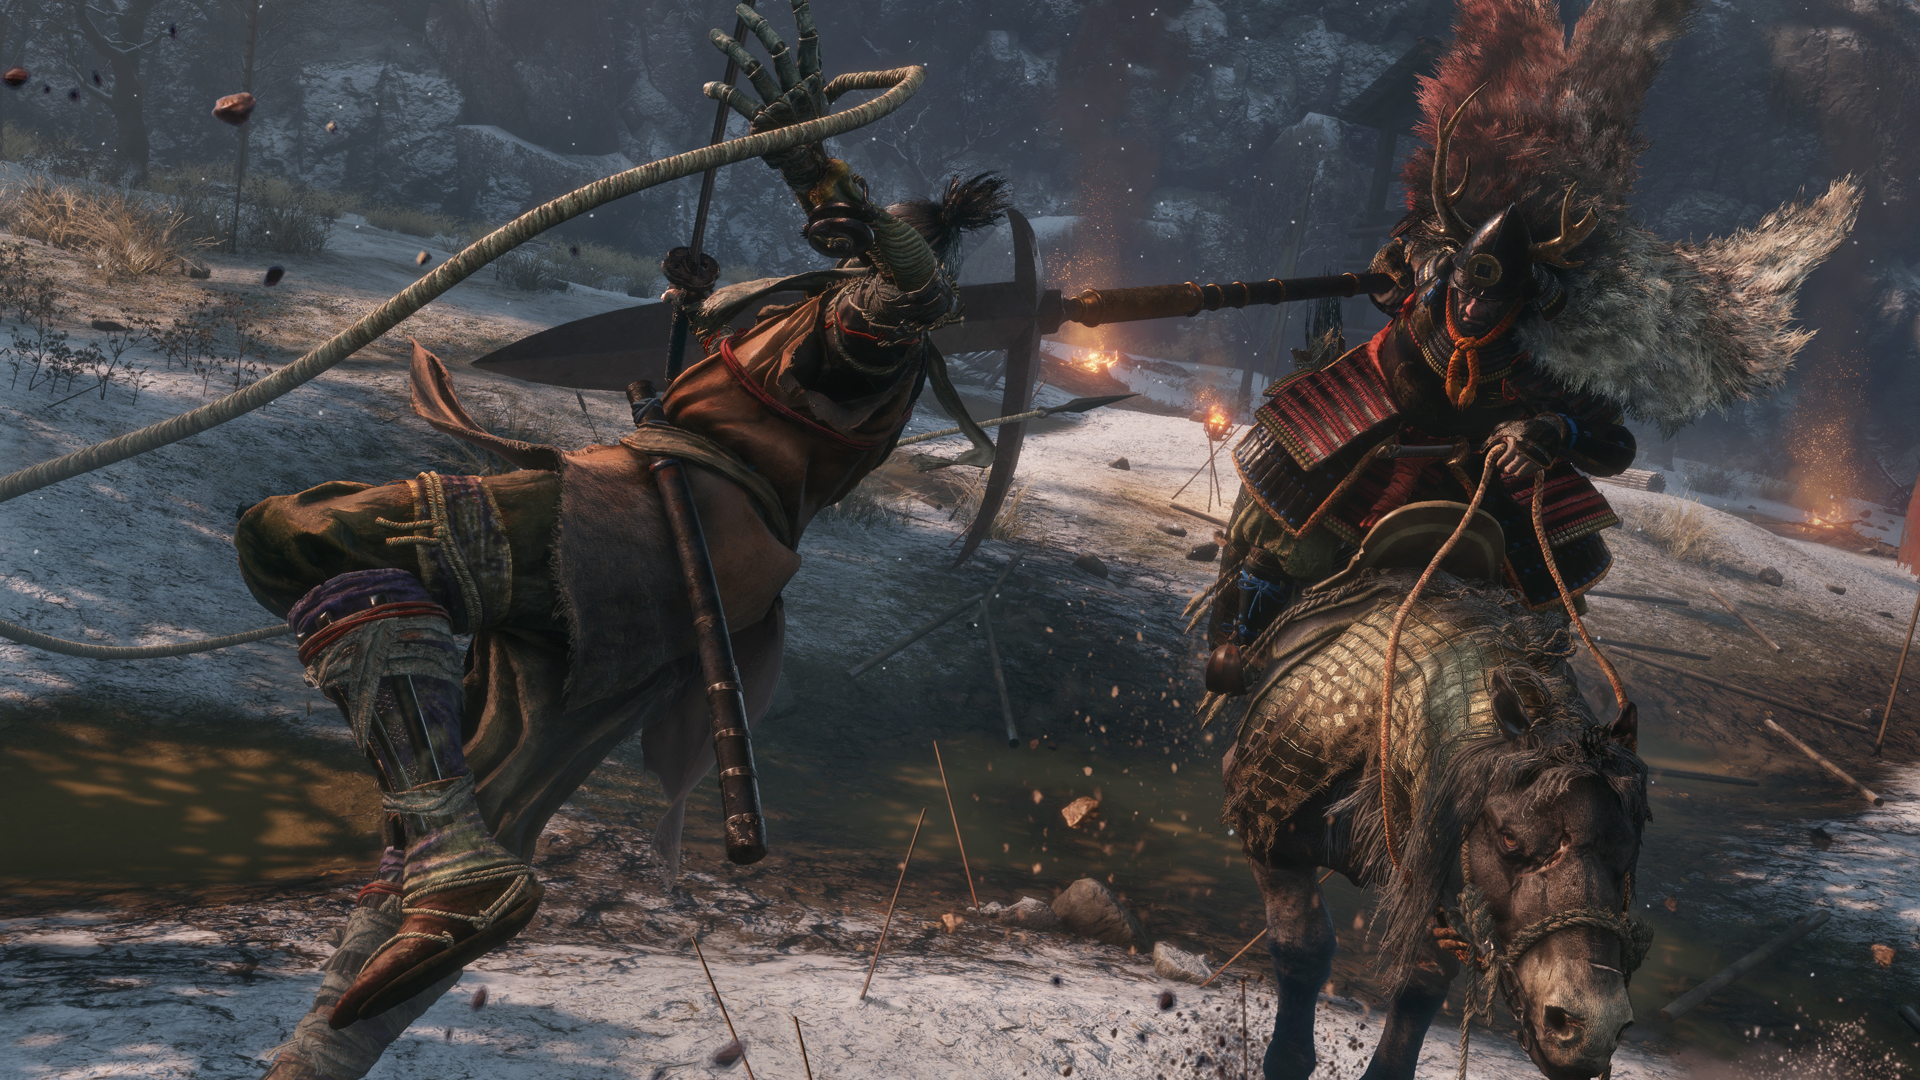 Sekiro: Shadows Die Twice is free with an Xbox One purchase at Newegg